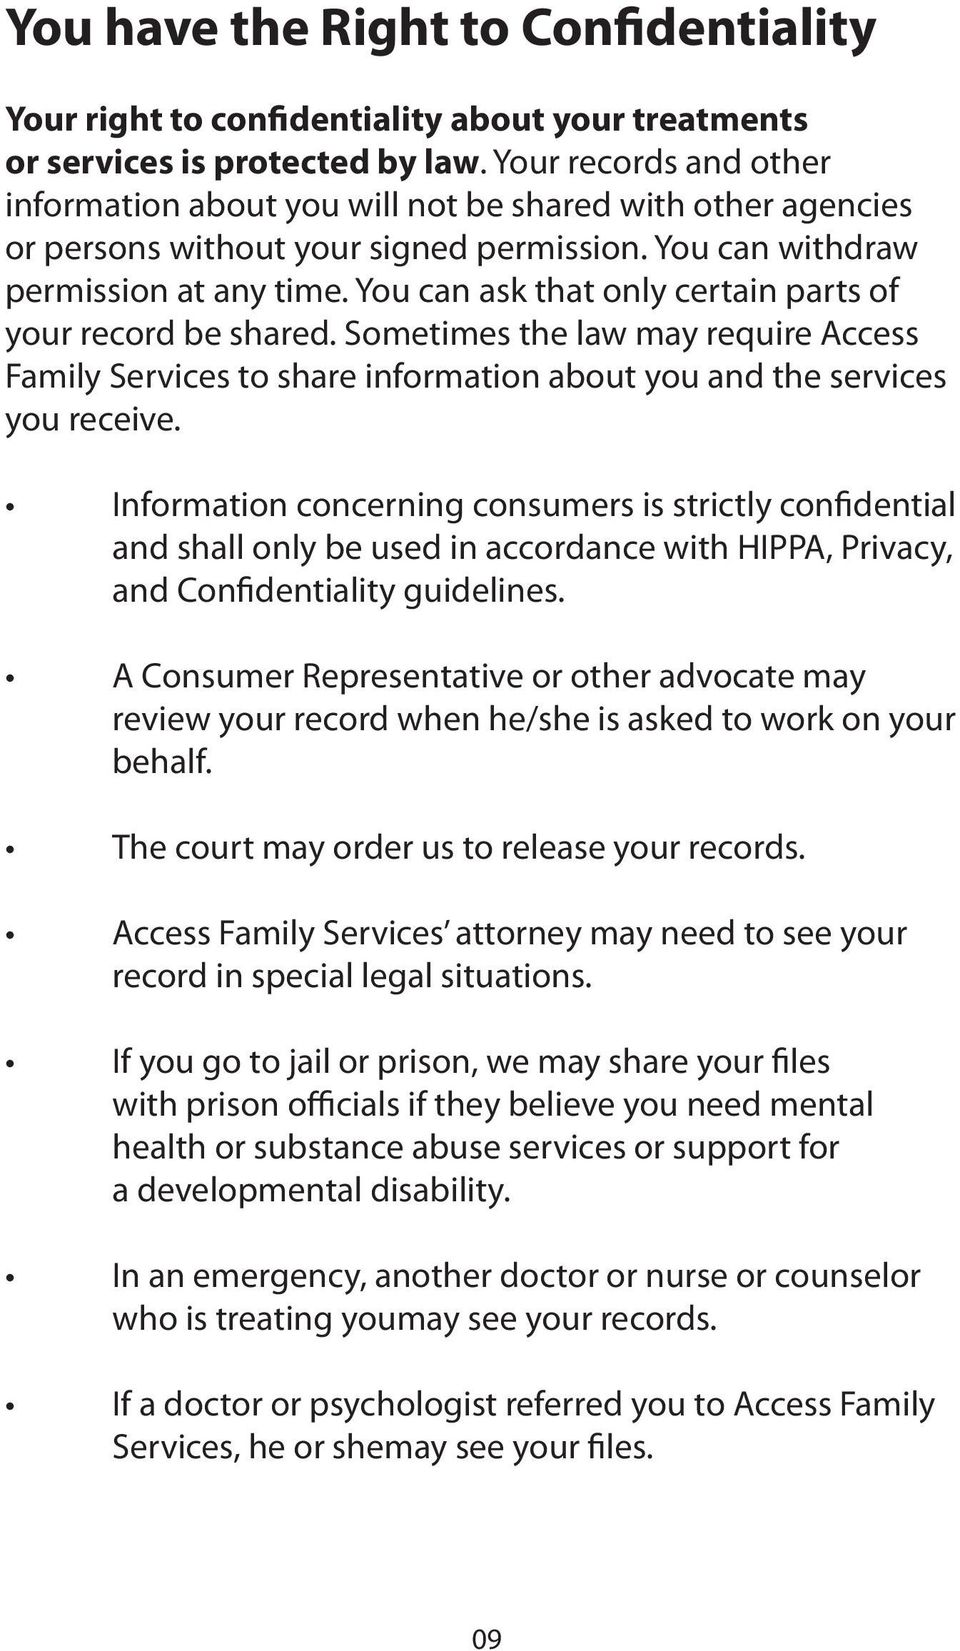 You can ask that only certain parts of your record be shared. Sometimes the law may require Access Family Services to share information about you and the services you receive.